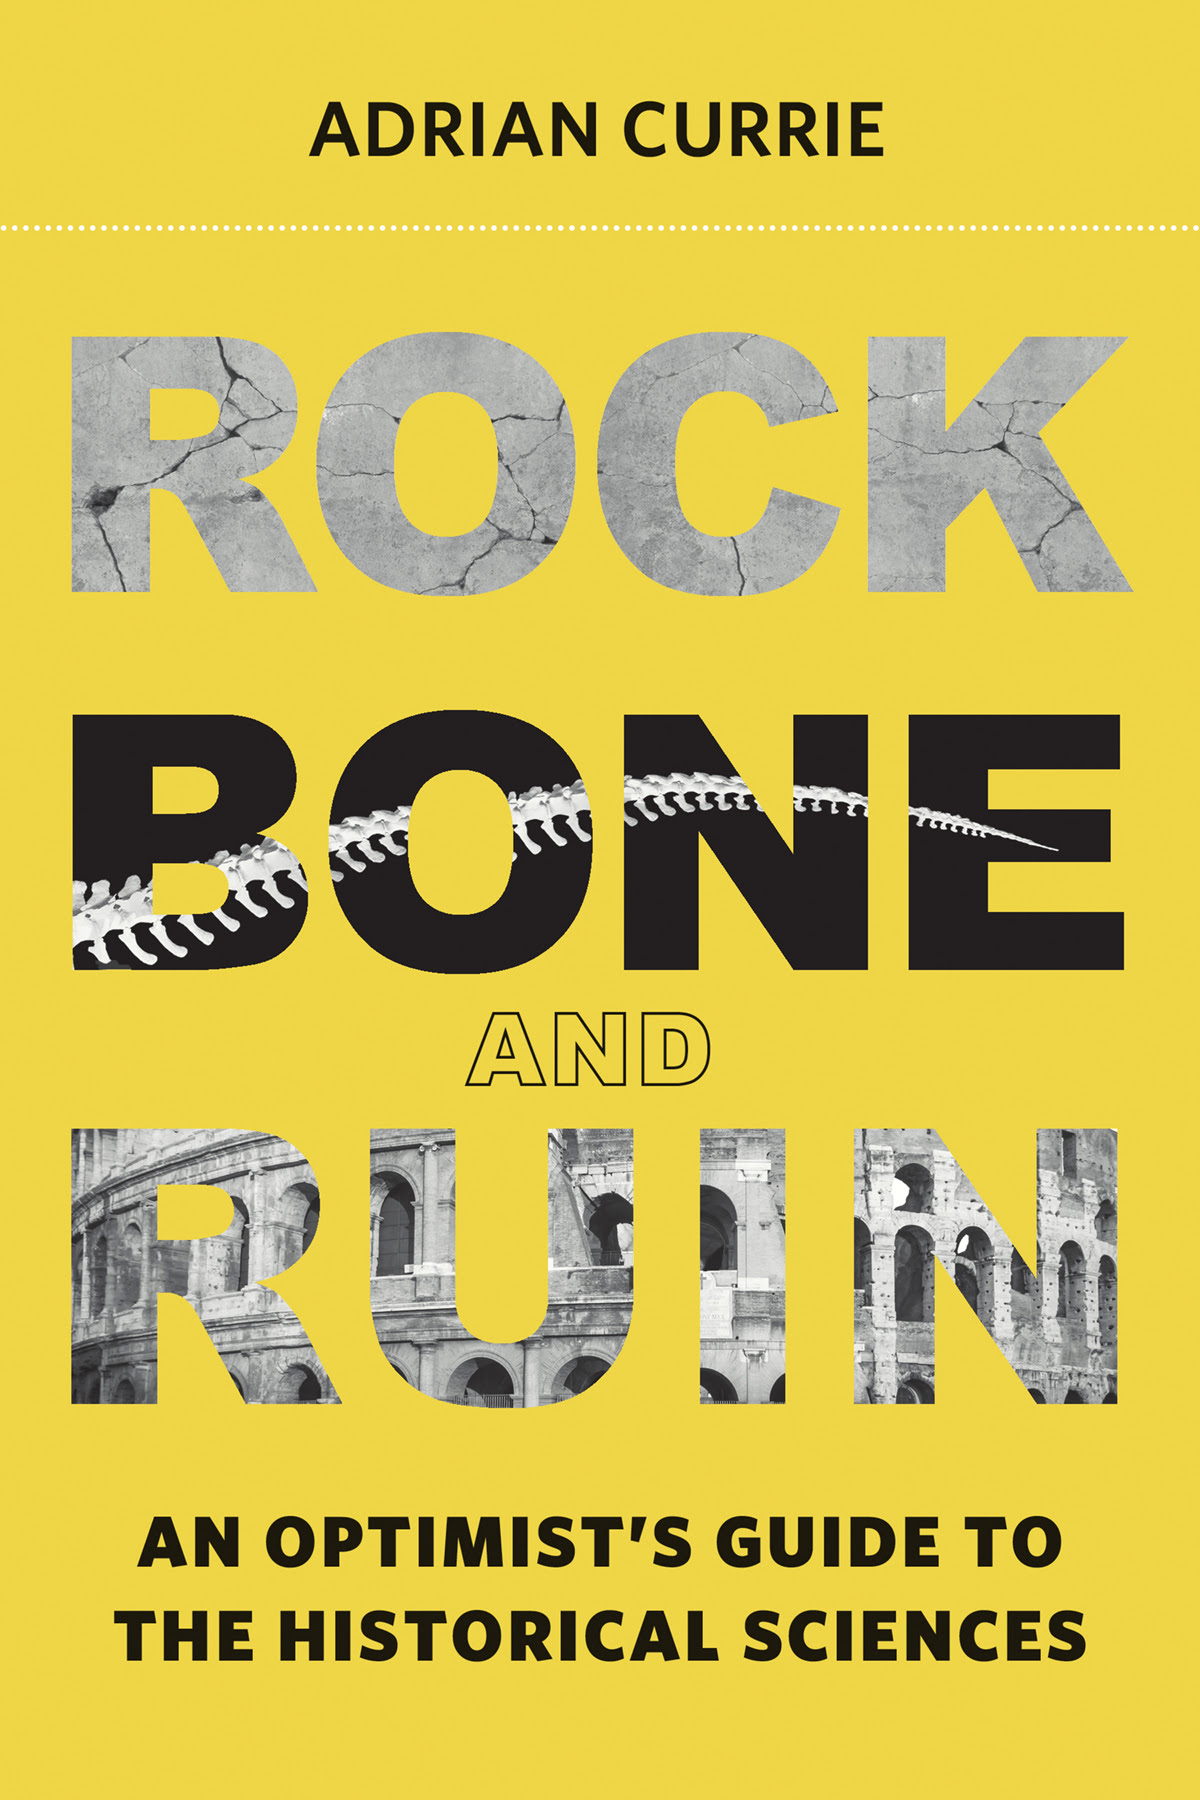 rock-bone-and-ruin